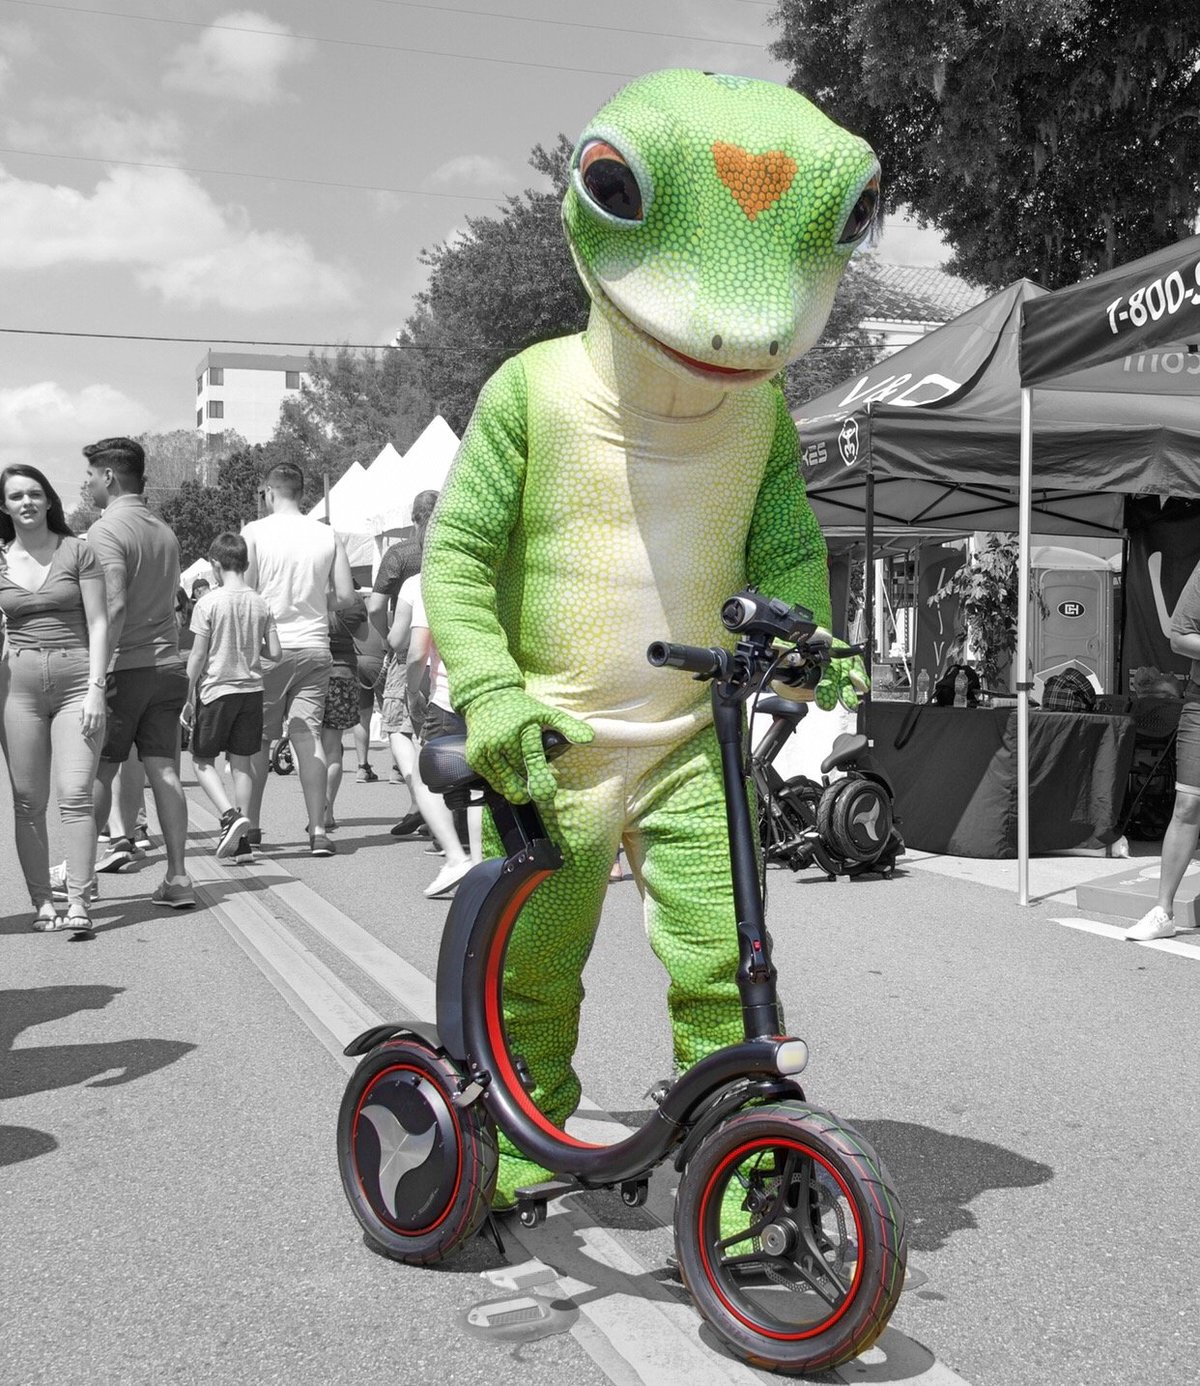 Geico Frog showing off Go-Bike Q1